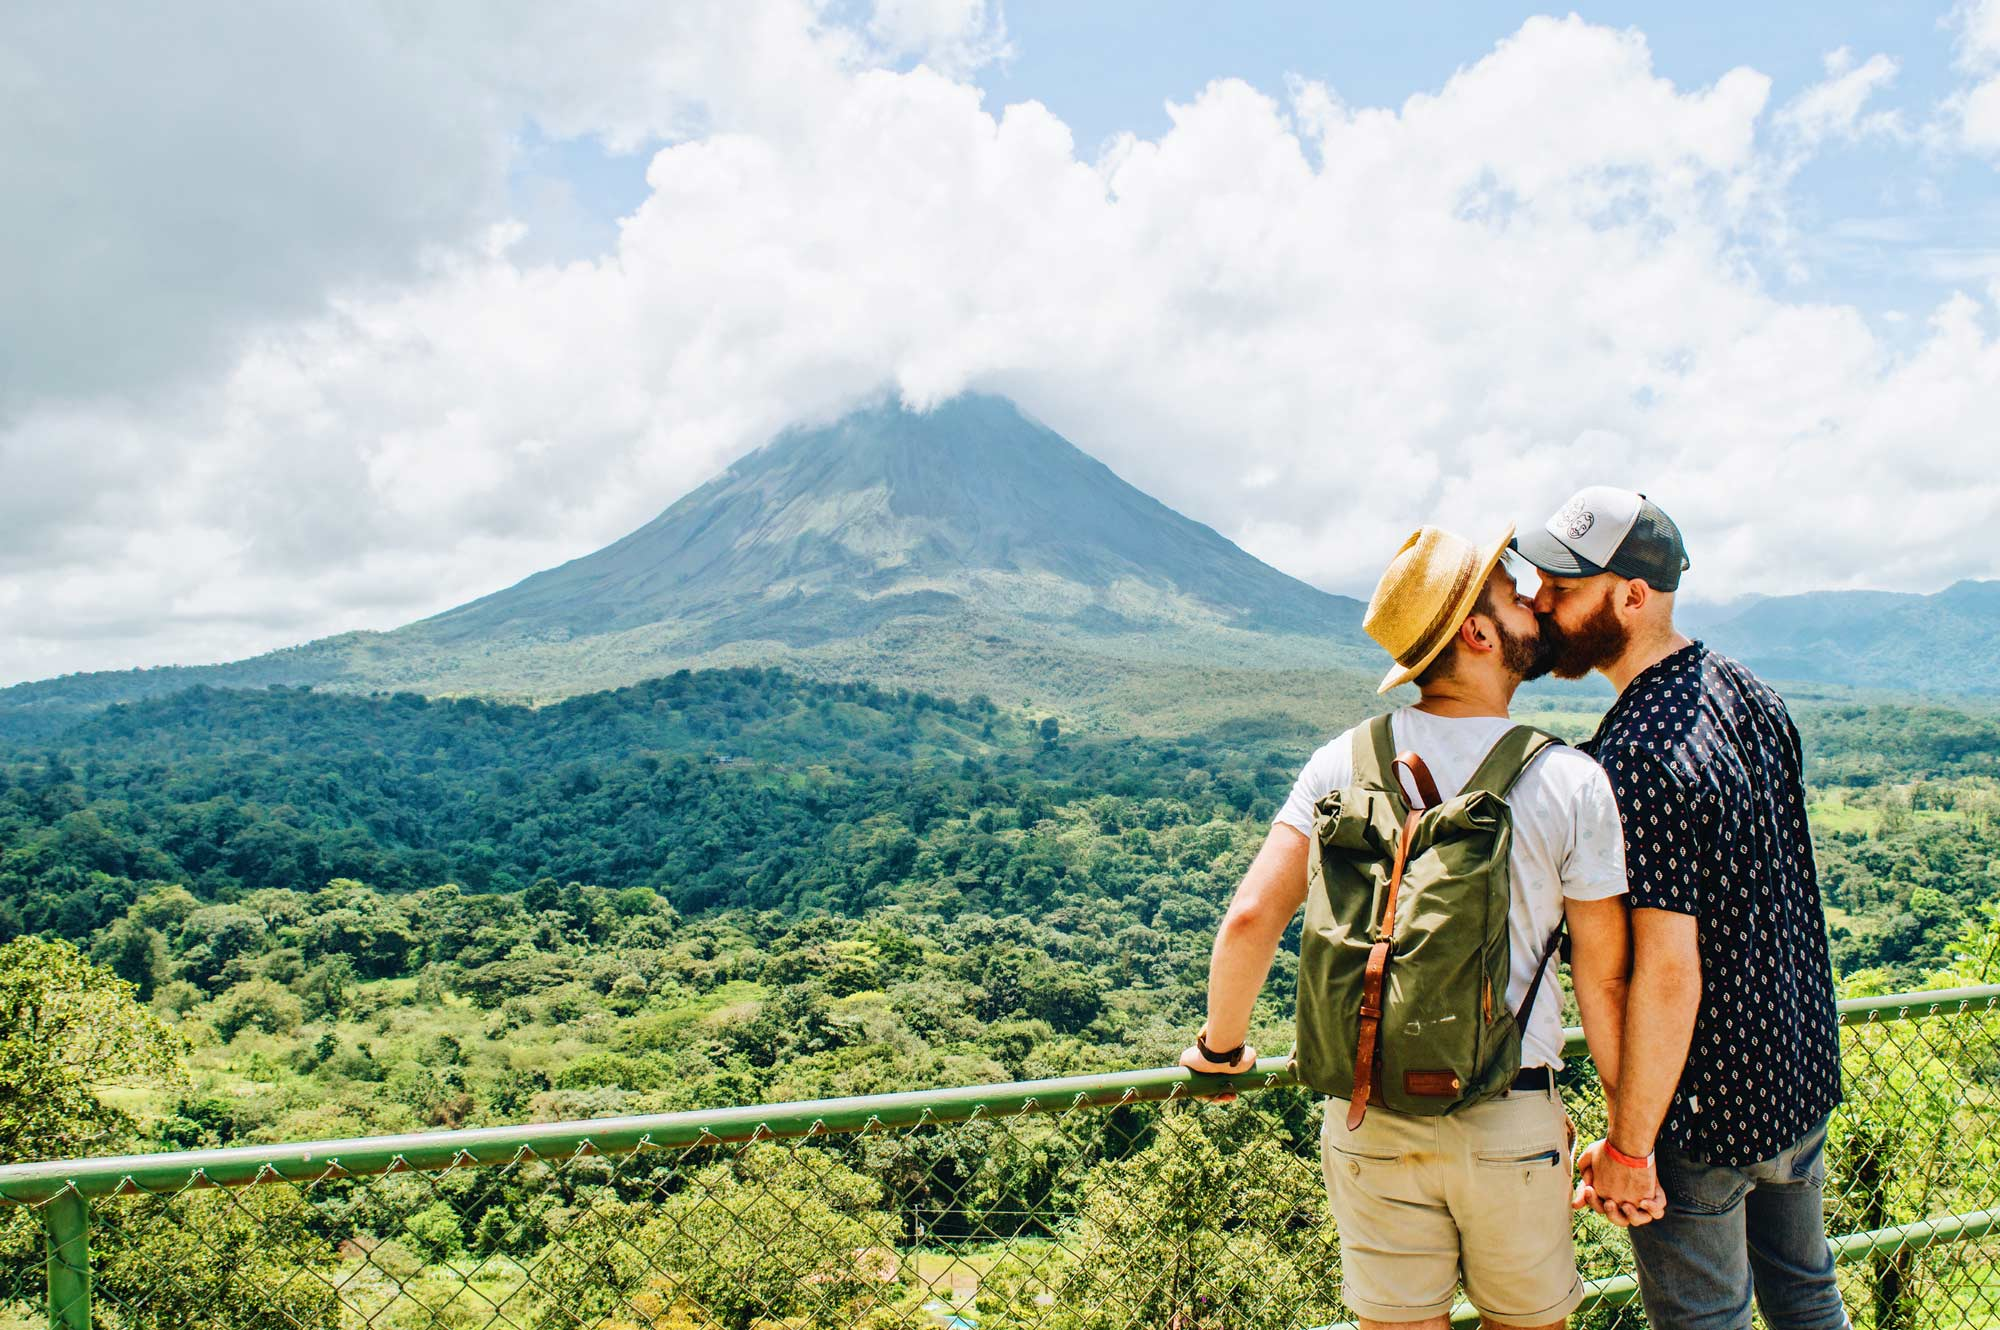 Exploring Gay-friendly Costa Rica hand-in-hand together © Coupleofmen.com